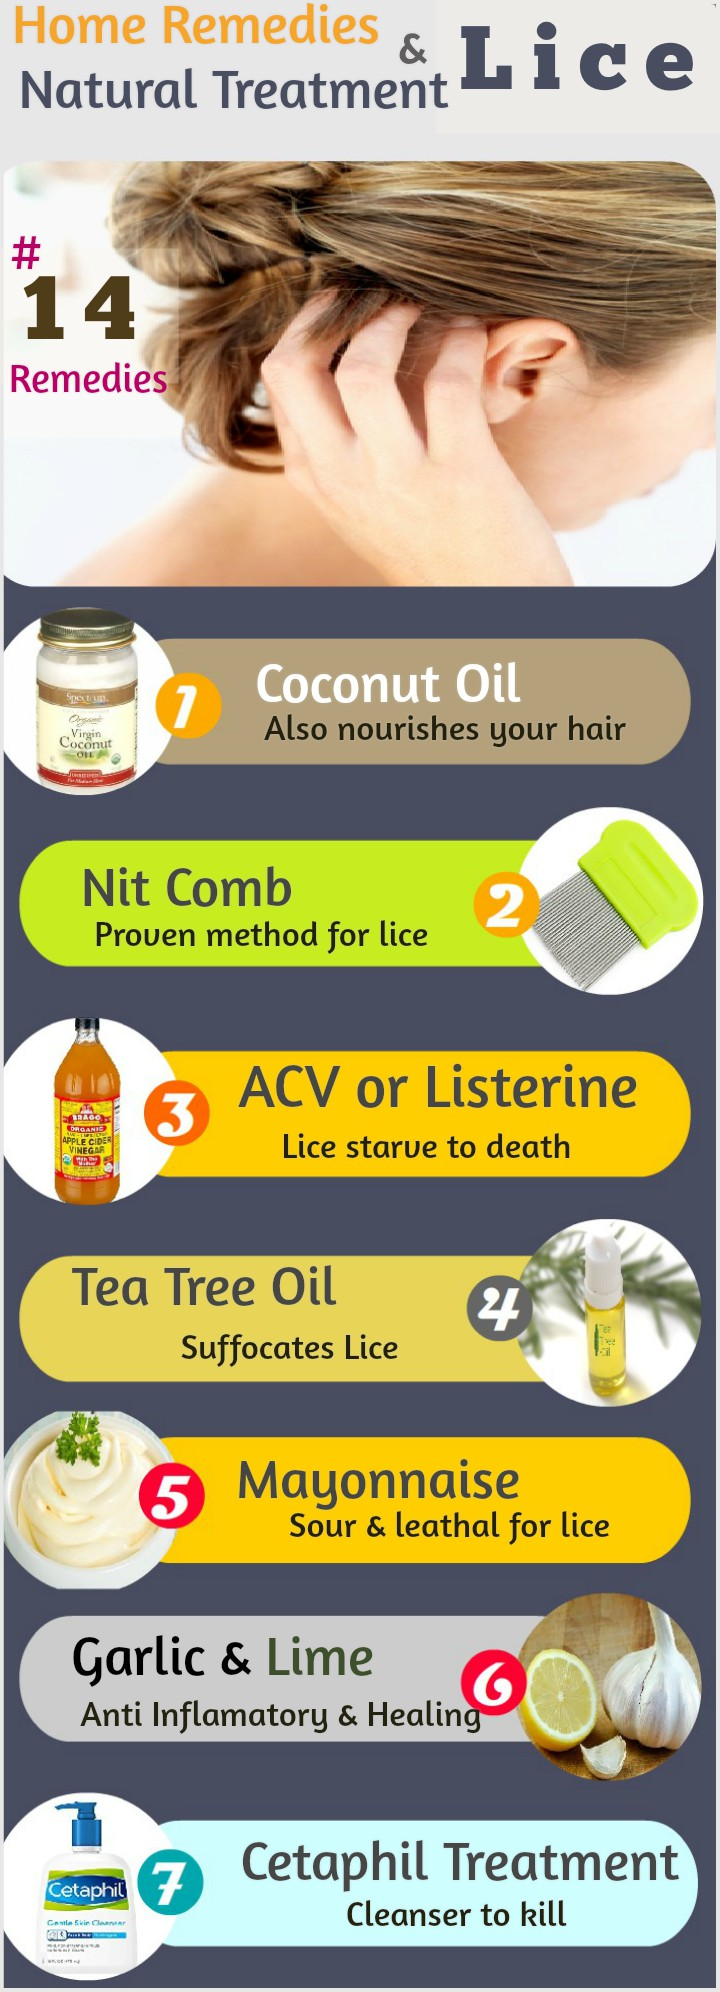 How To Get Rid Of Lice 14 Home Remedies And Natural Lice Treatment